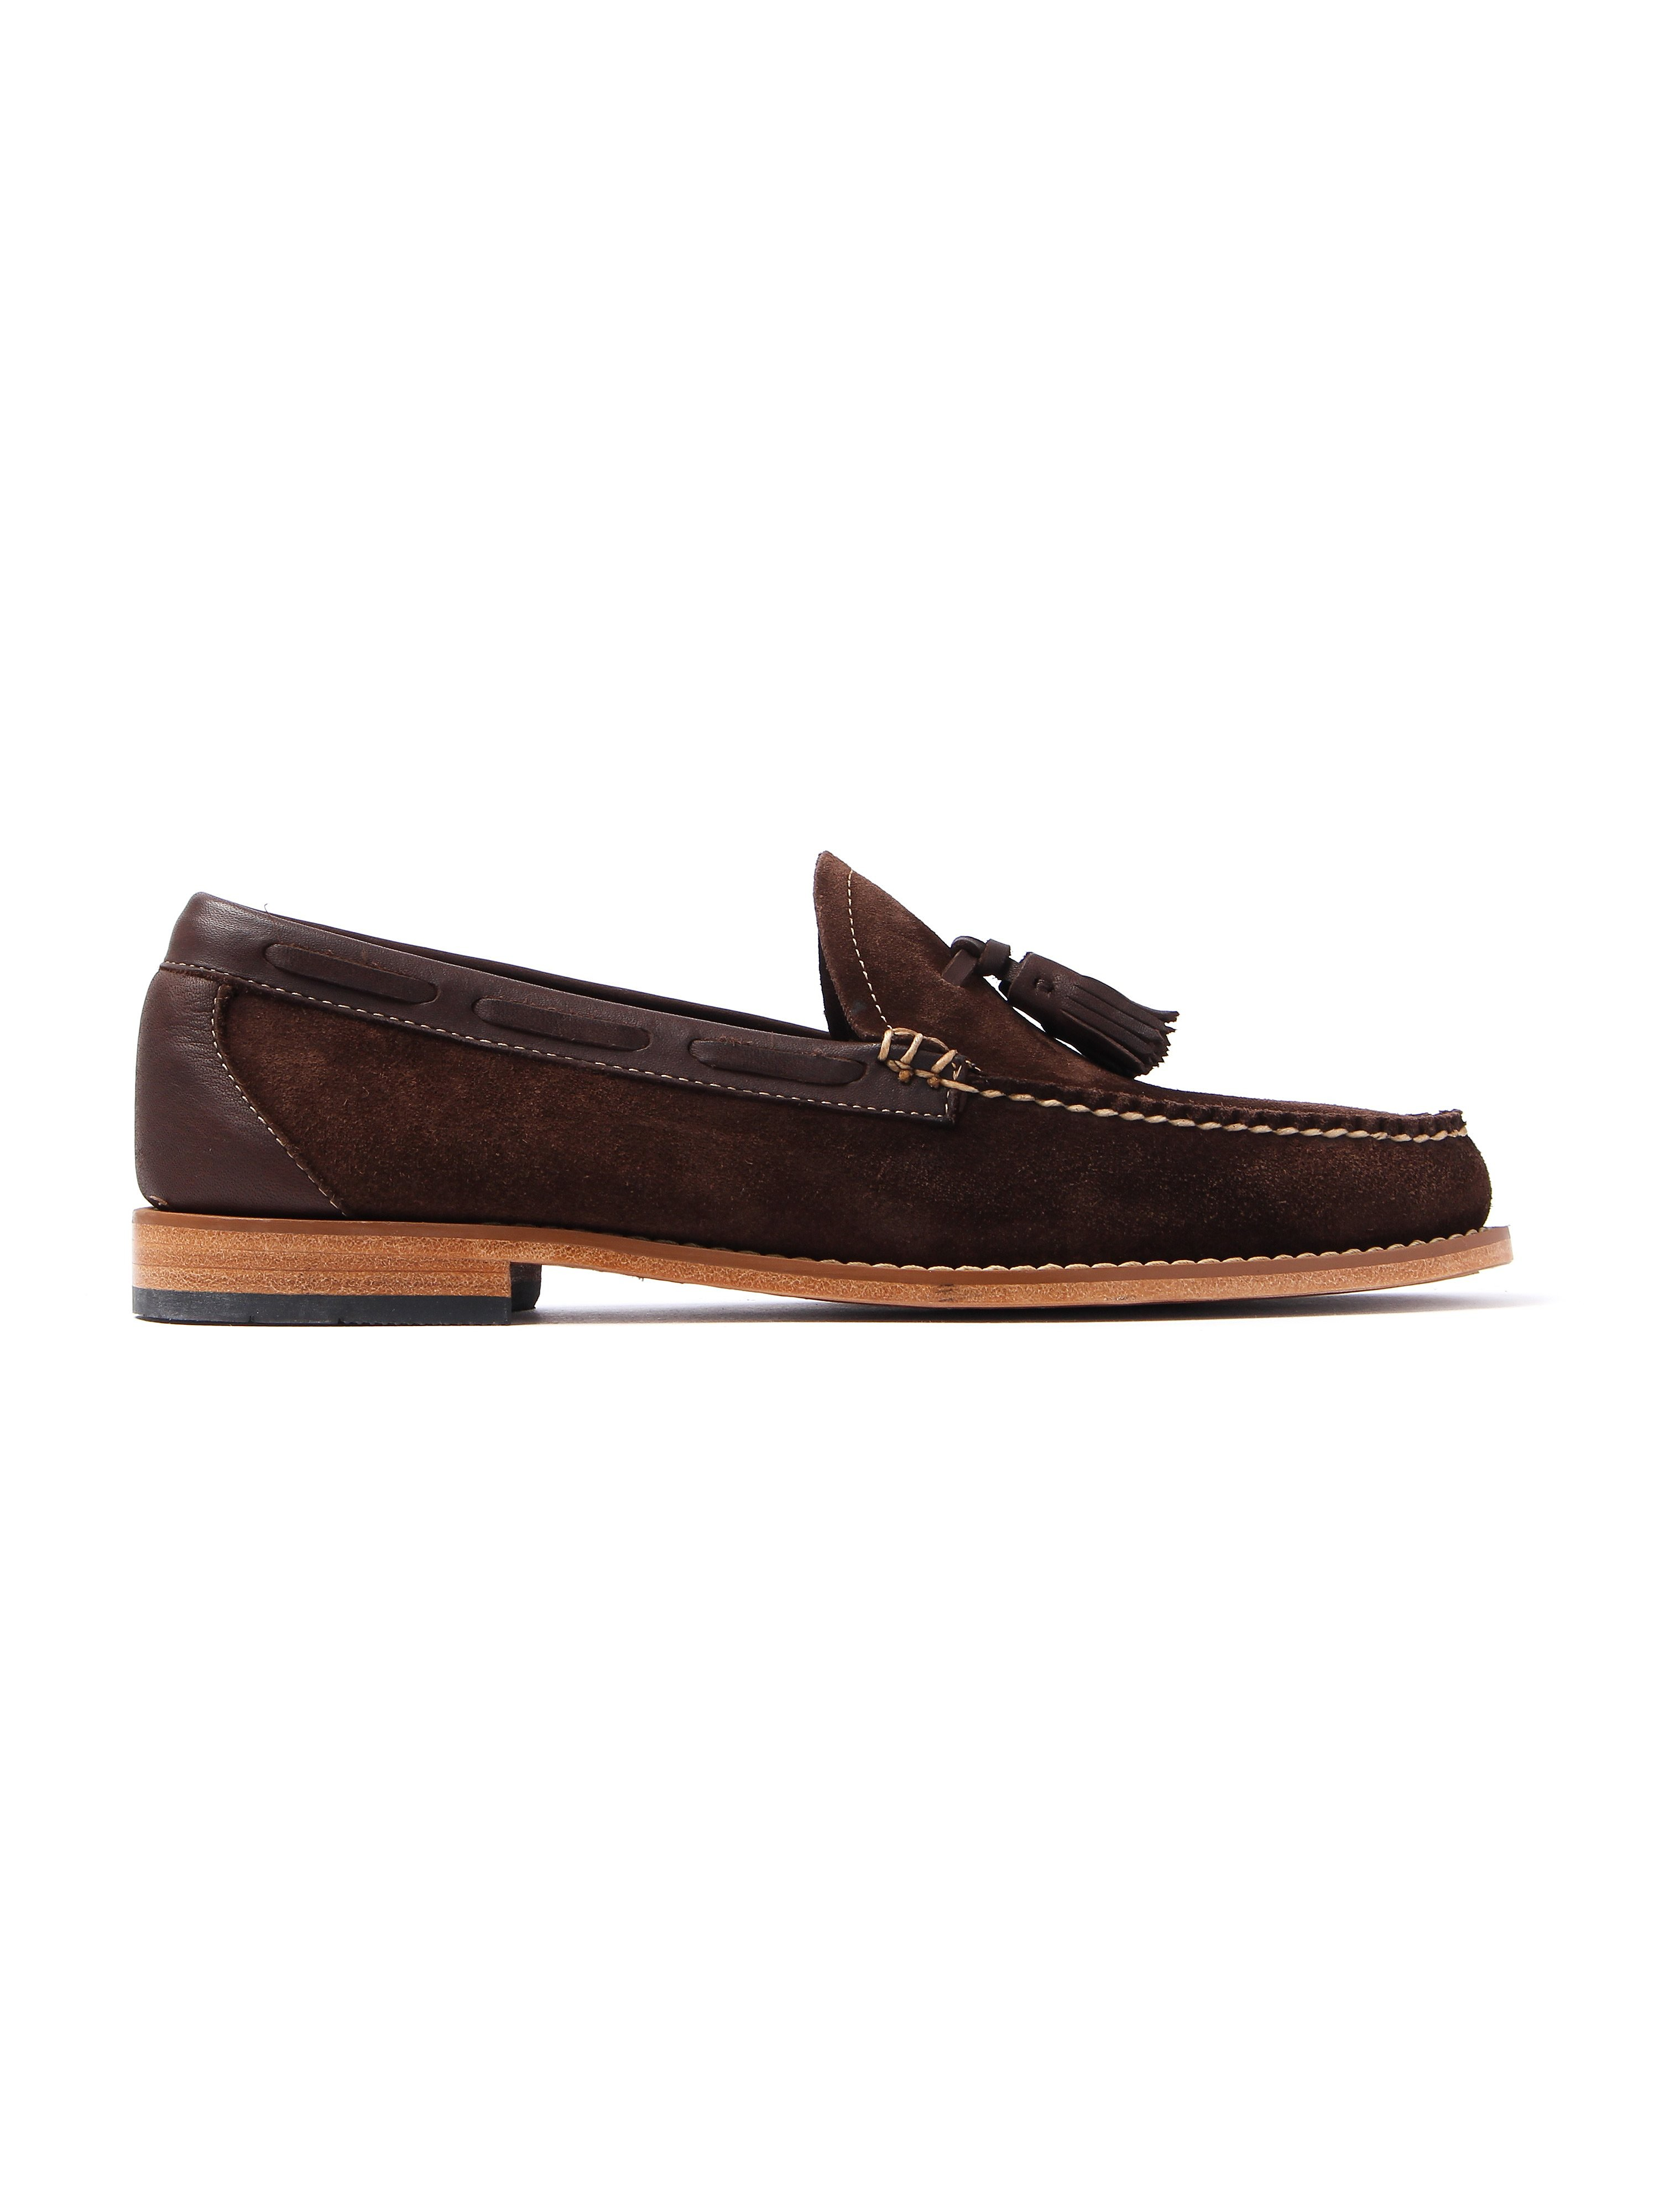 G.H. Bass Men's Weejuns Larkin Reverso Suede & Leather Boater Moccasins - Dark Brown